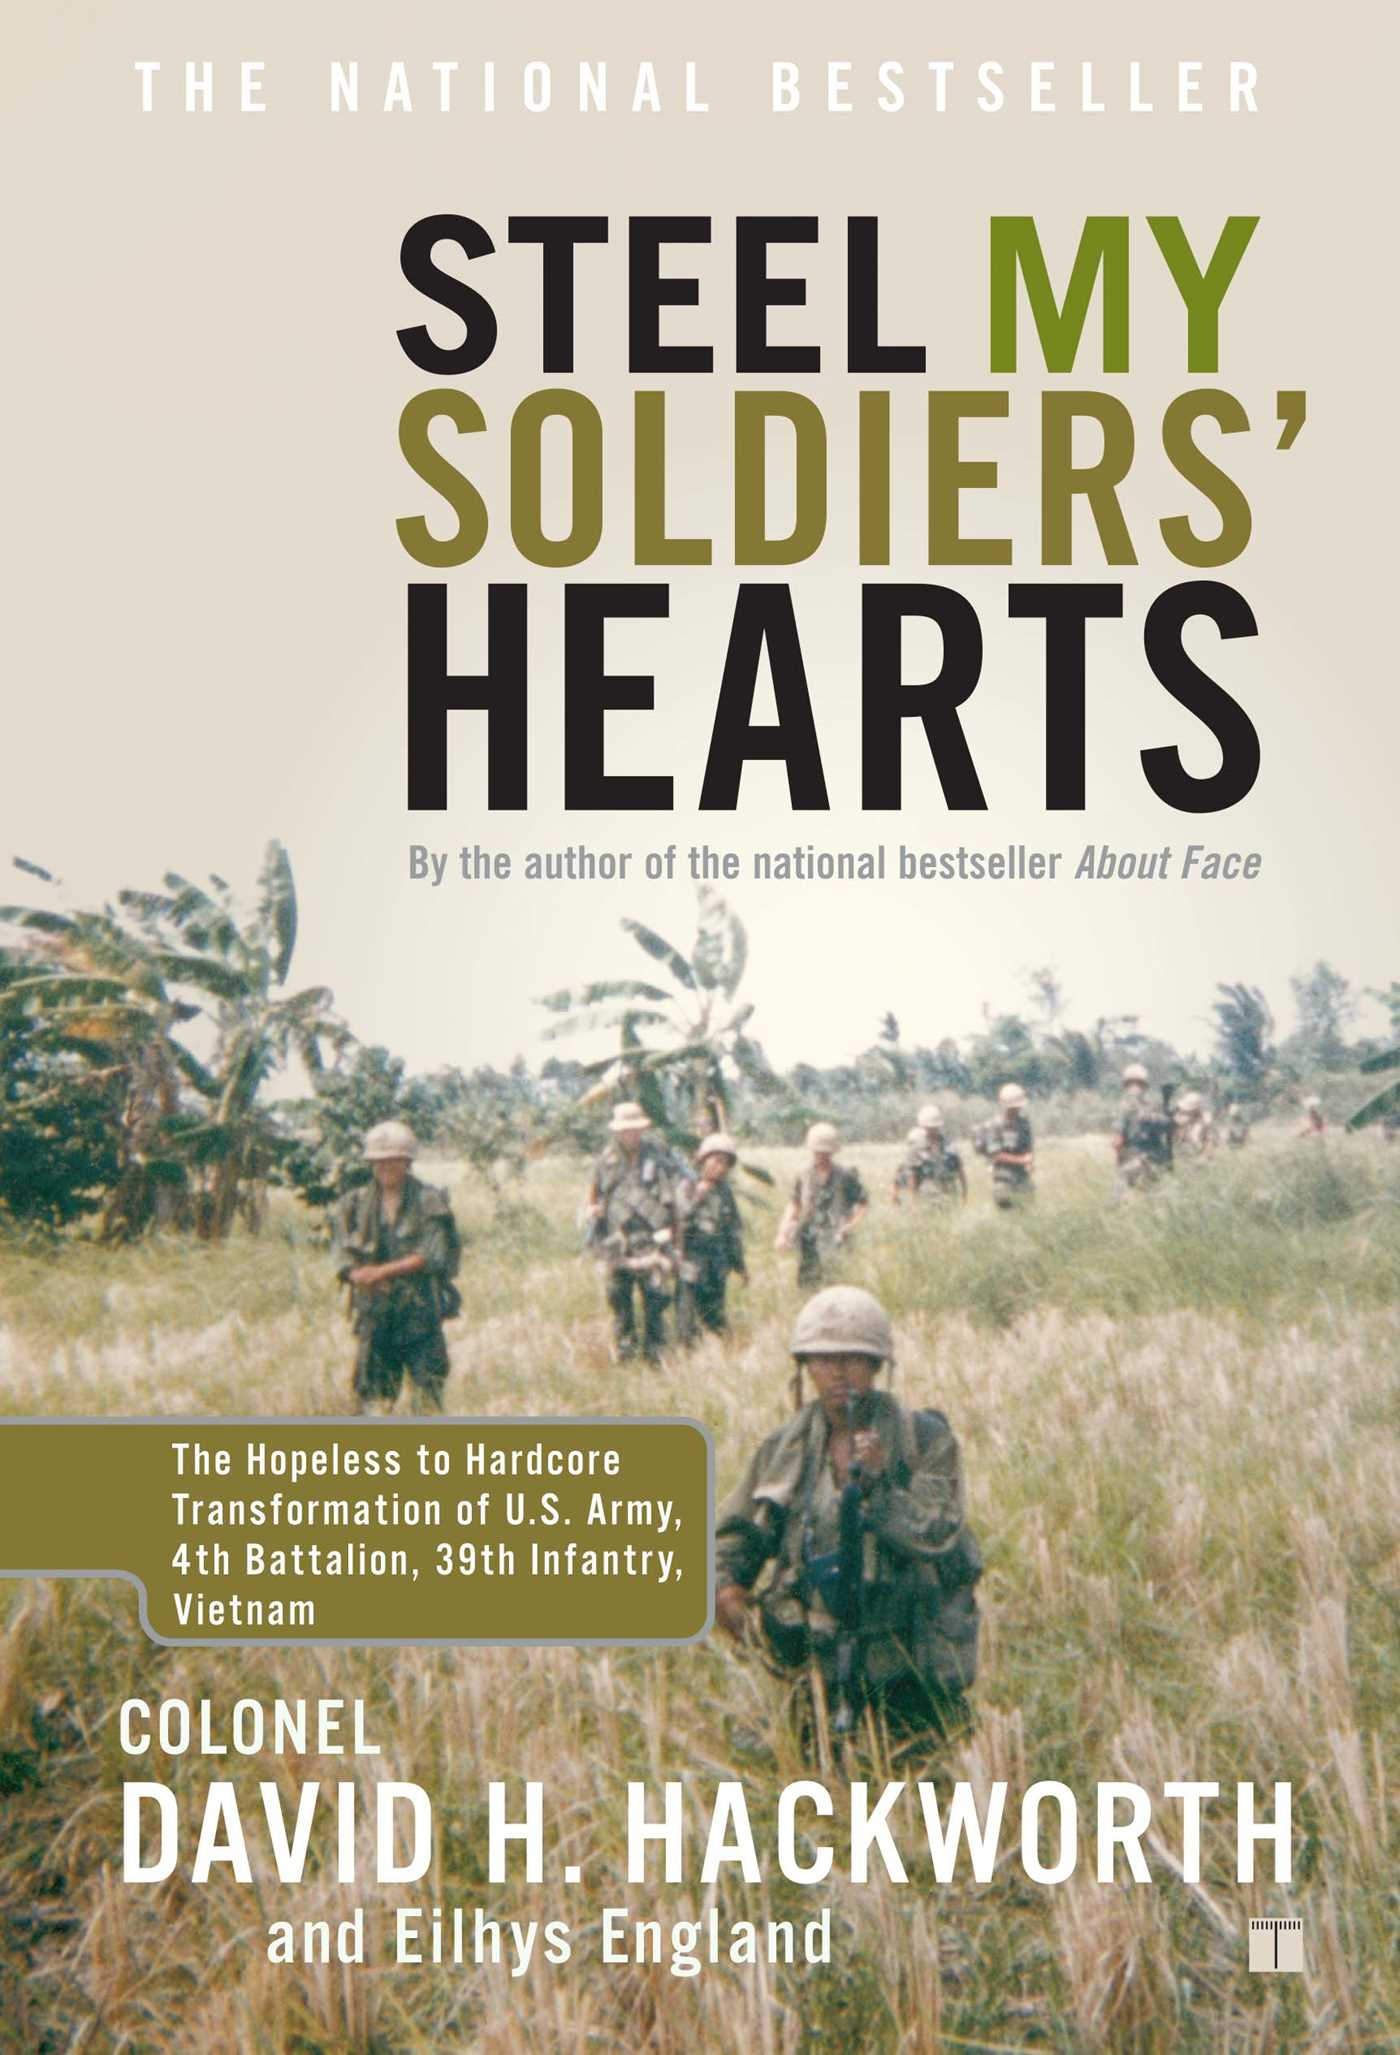 Steel-my-soldiers-hearts-9780743246132_hr